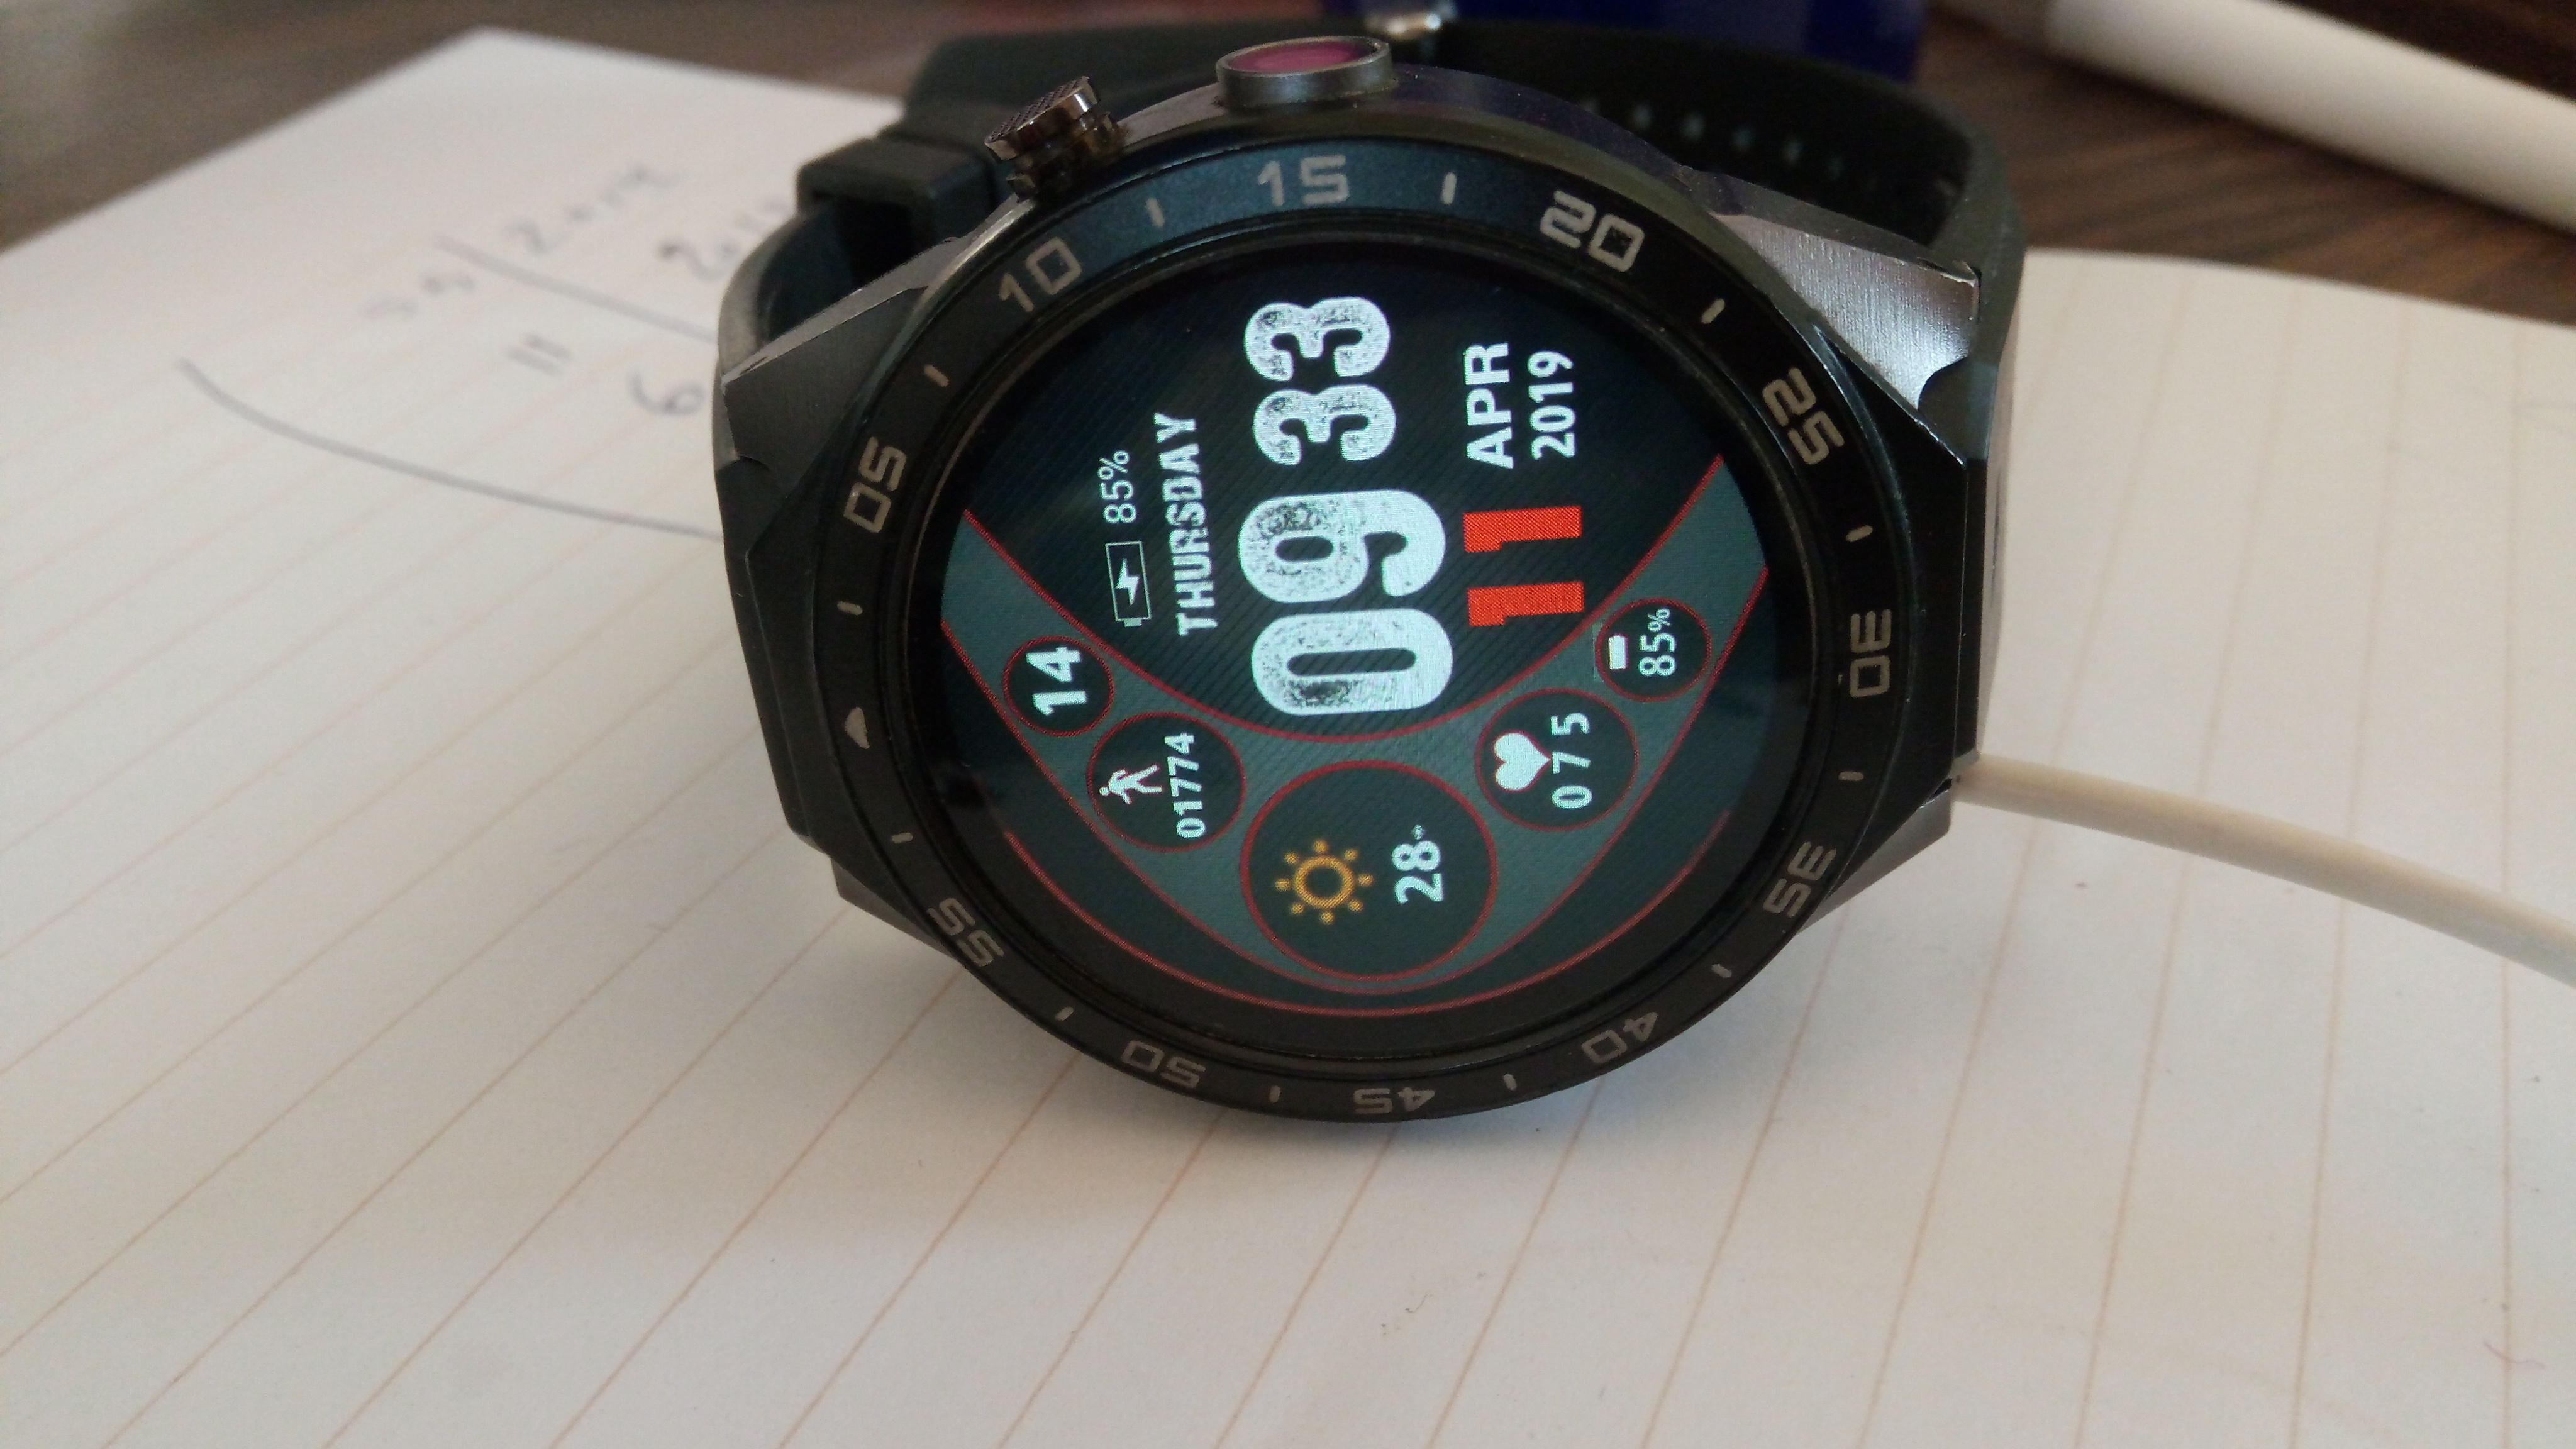 DIGITAL WATCH,Watch face kw88, CLOCK SKINS, ANDROID WATCH